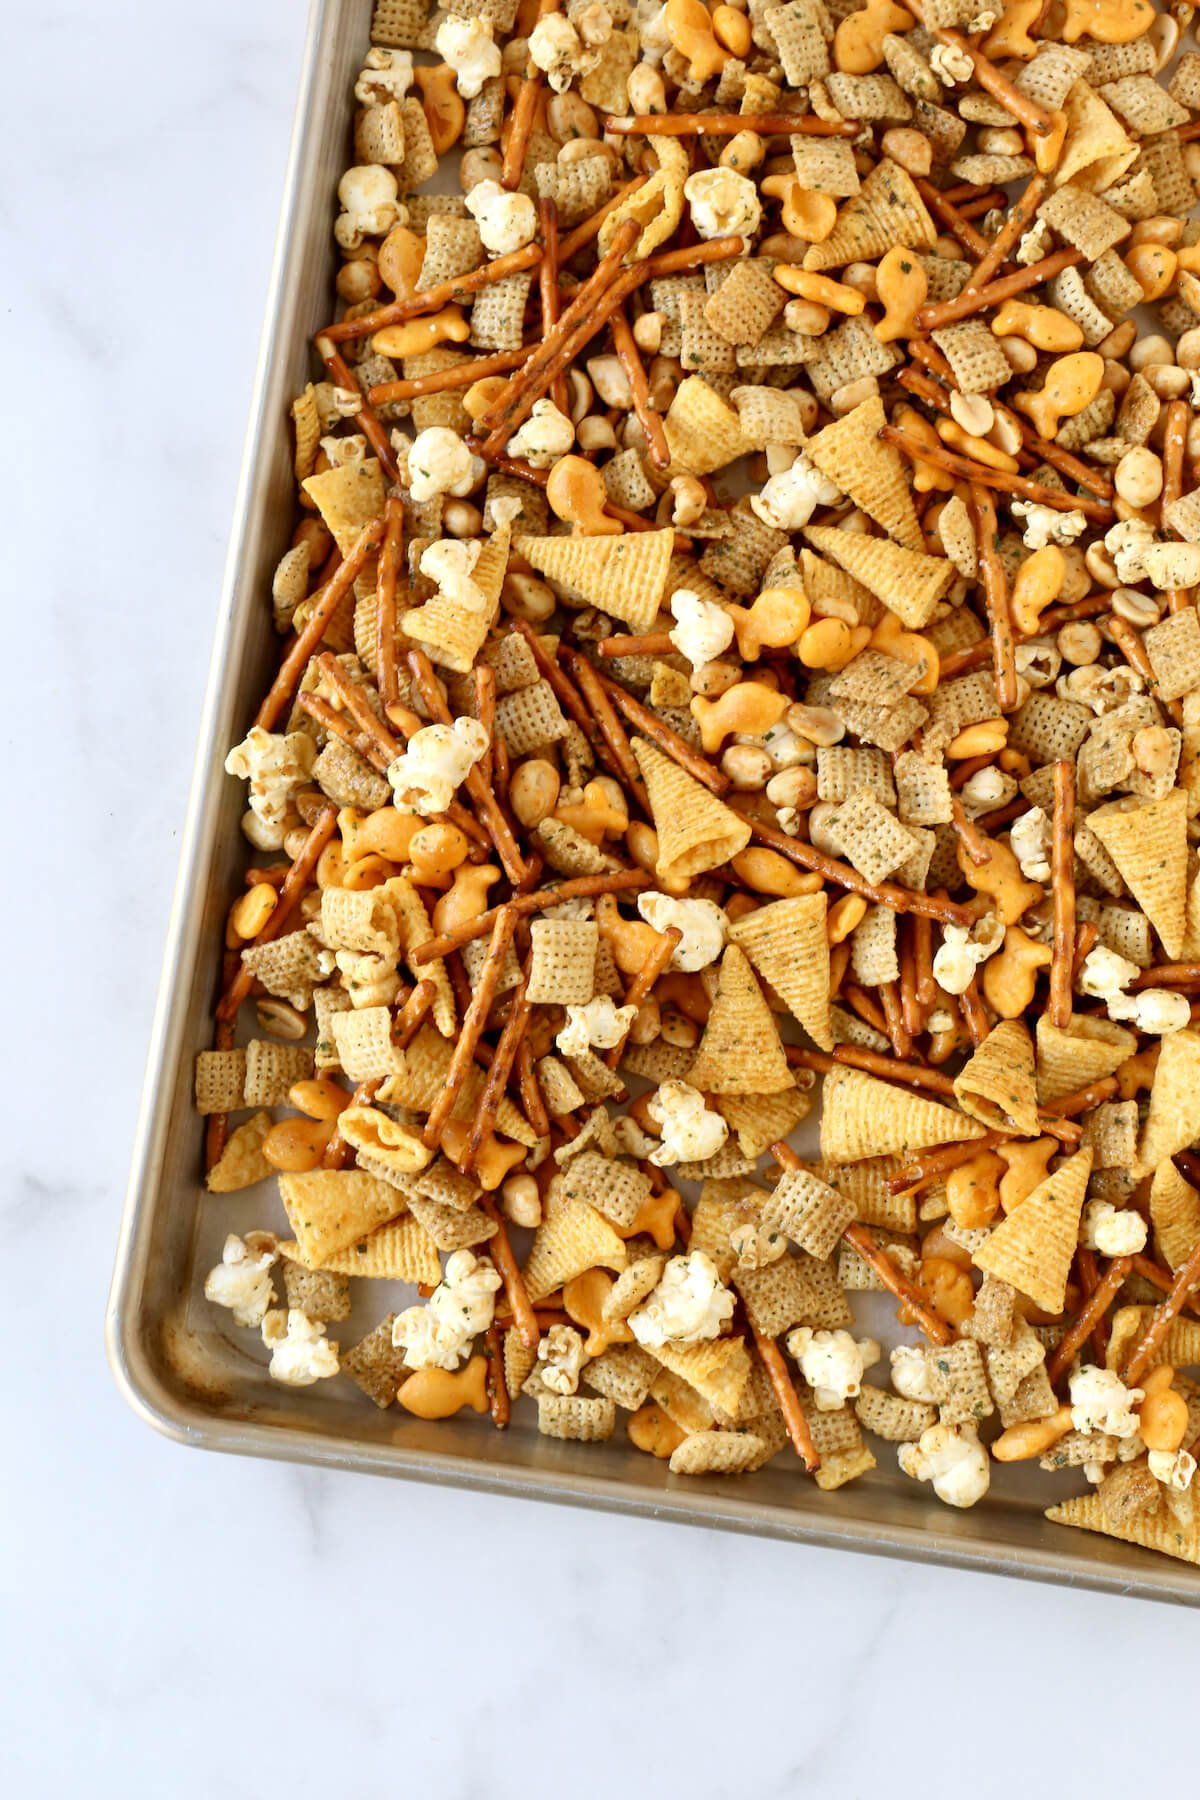 A sheet pan filled with seasoned pretzels, bugels, gold fish, popcorn, peanuts and chex cereal.